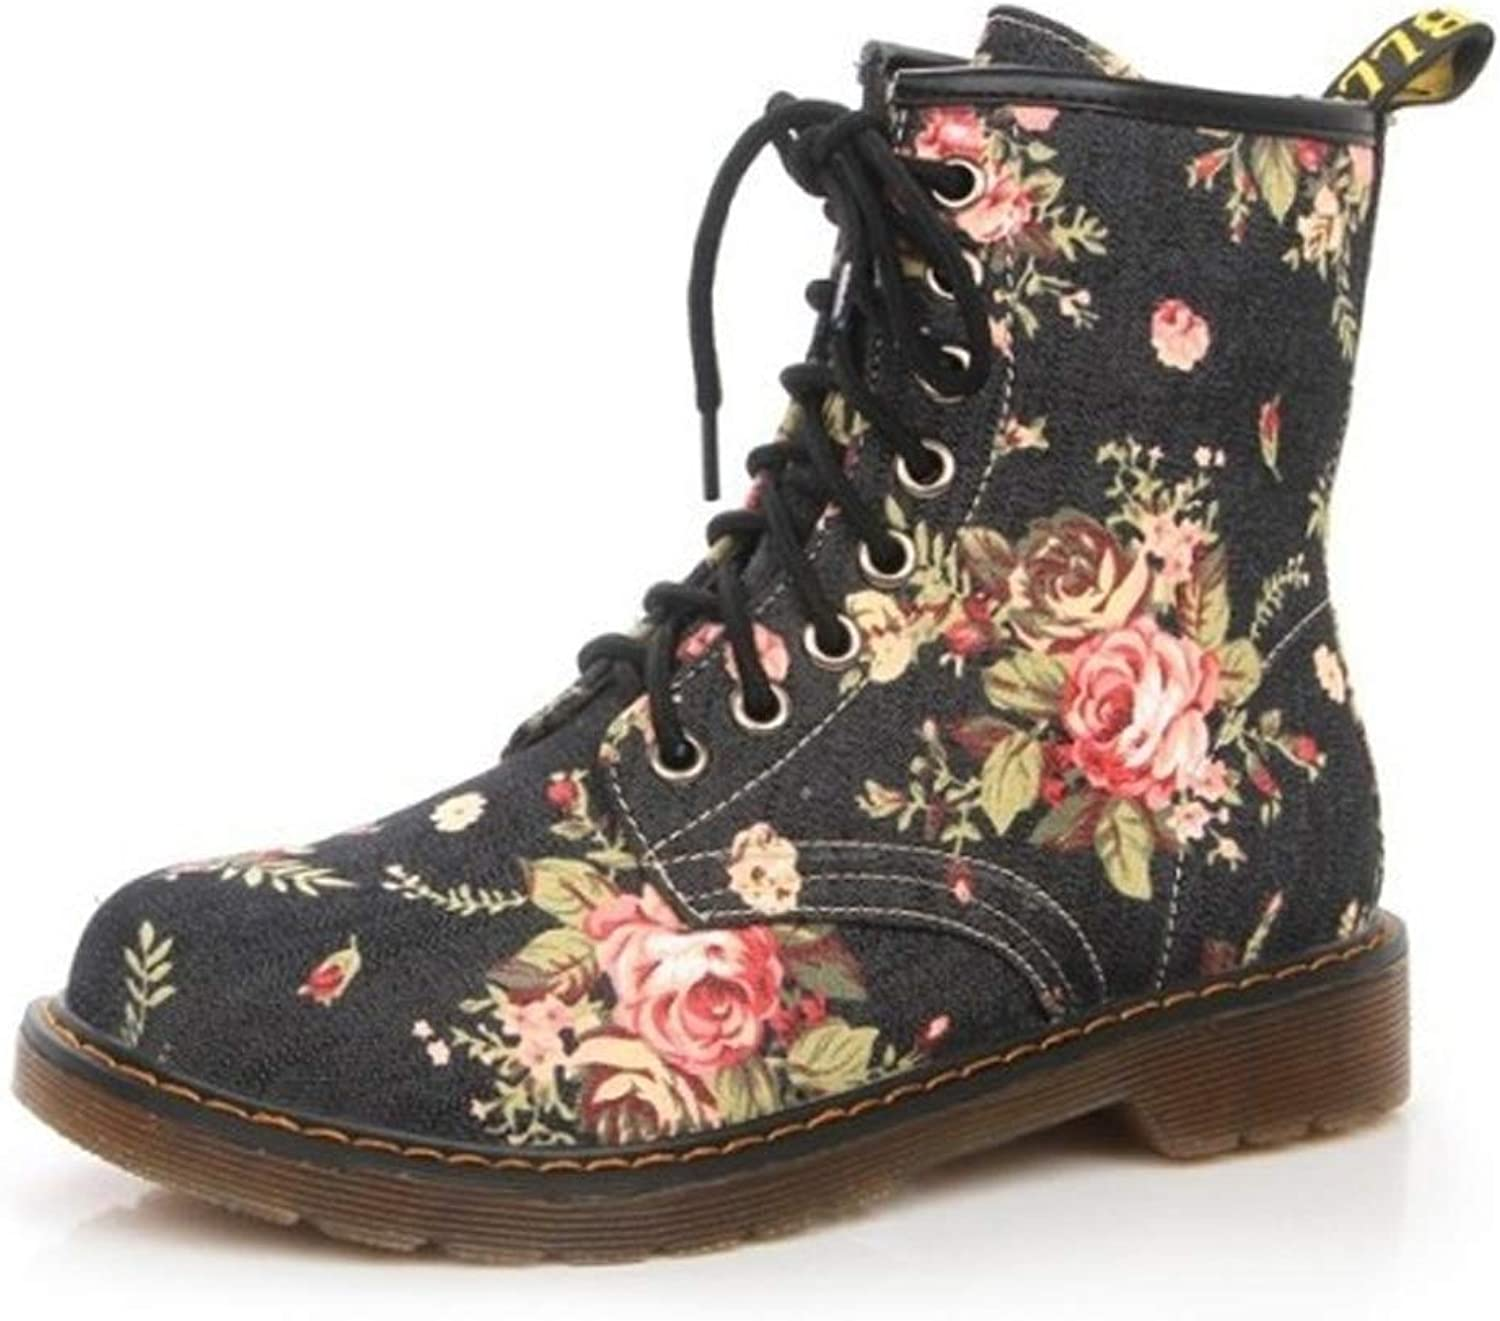 Aiweijia Flowers Retro Women's shoes Trend Martin boots head High Top shoes